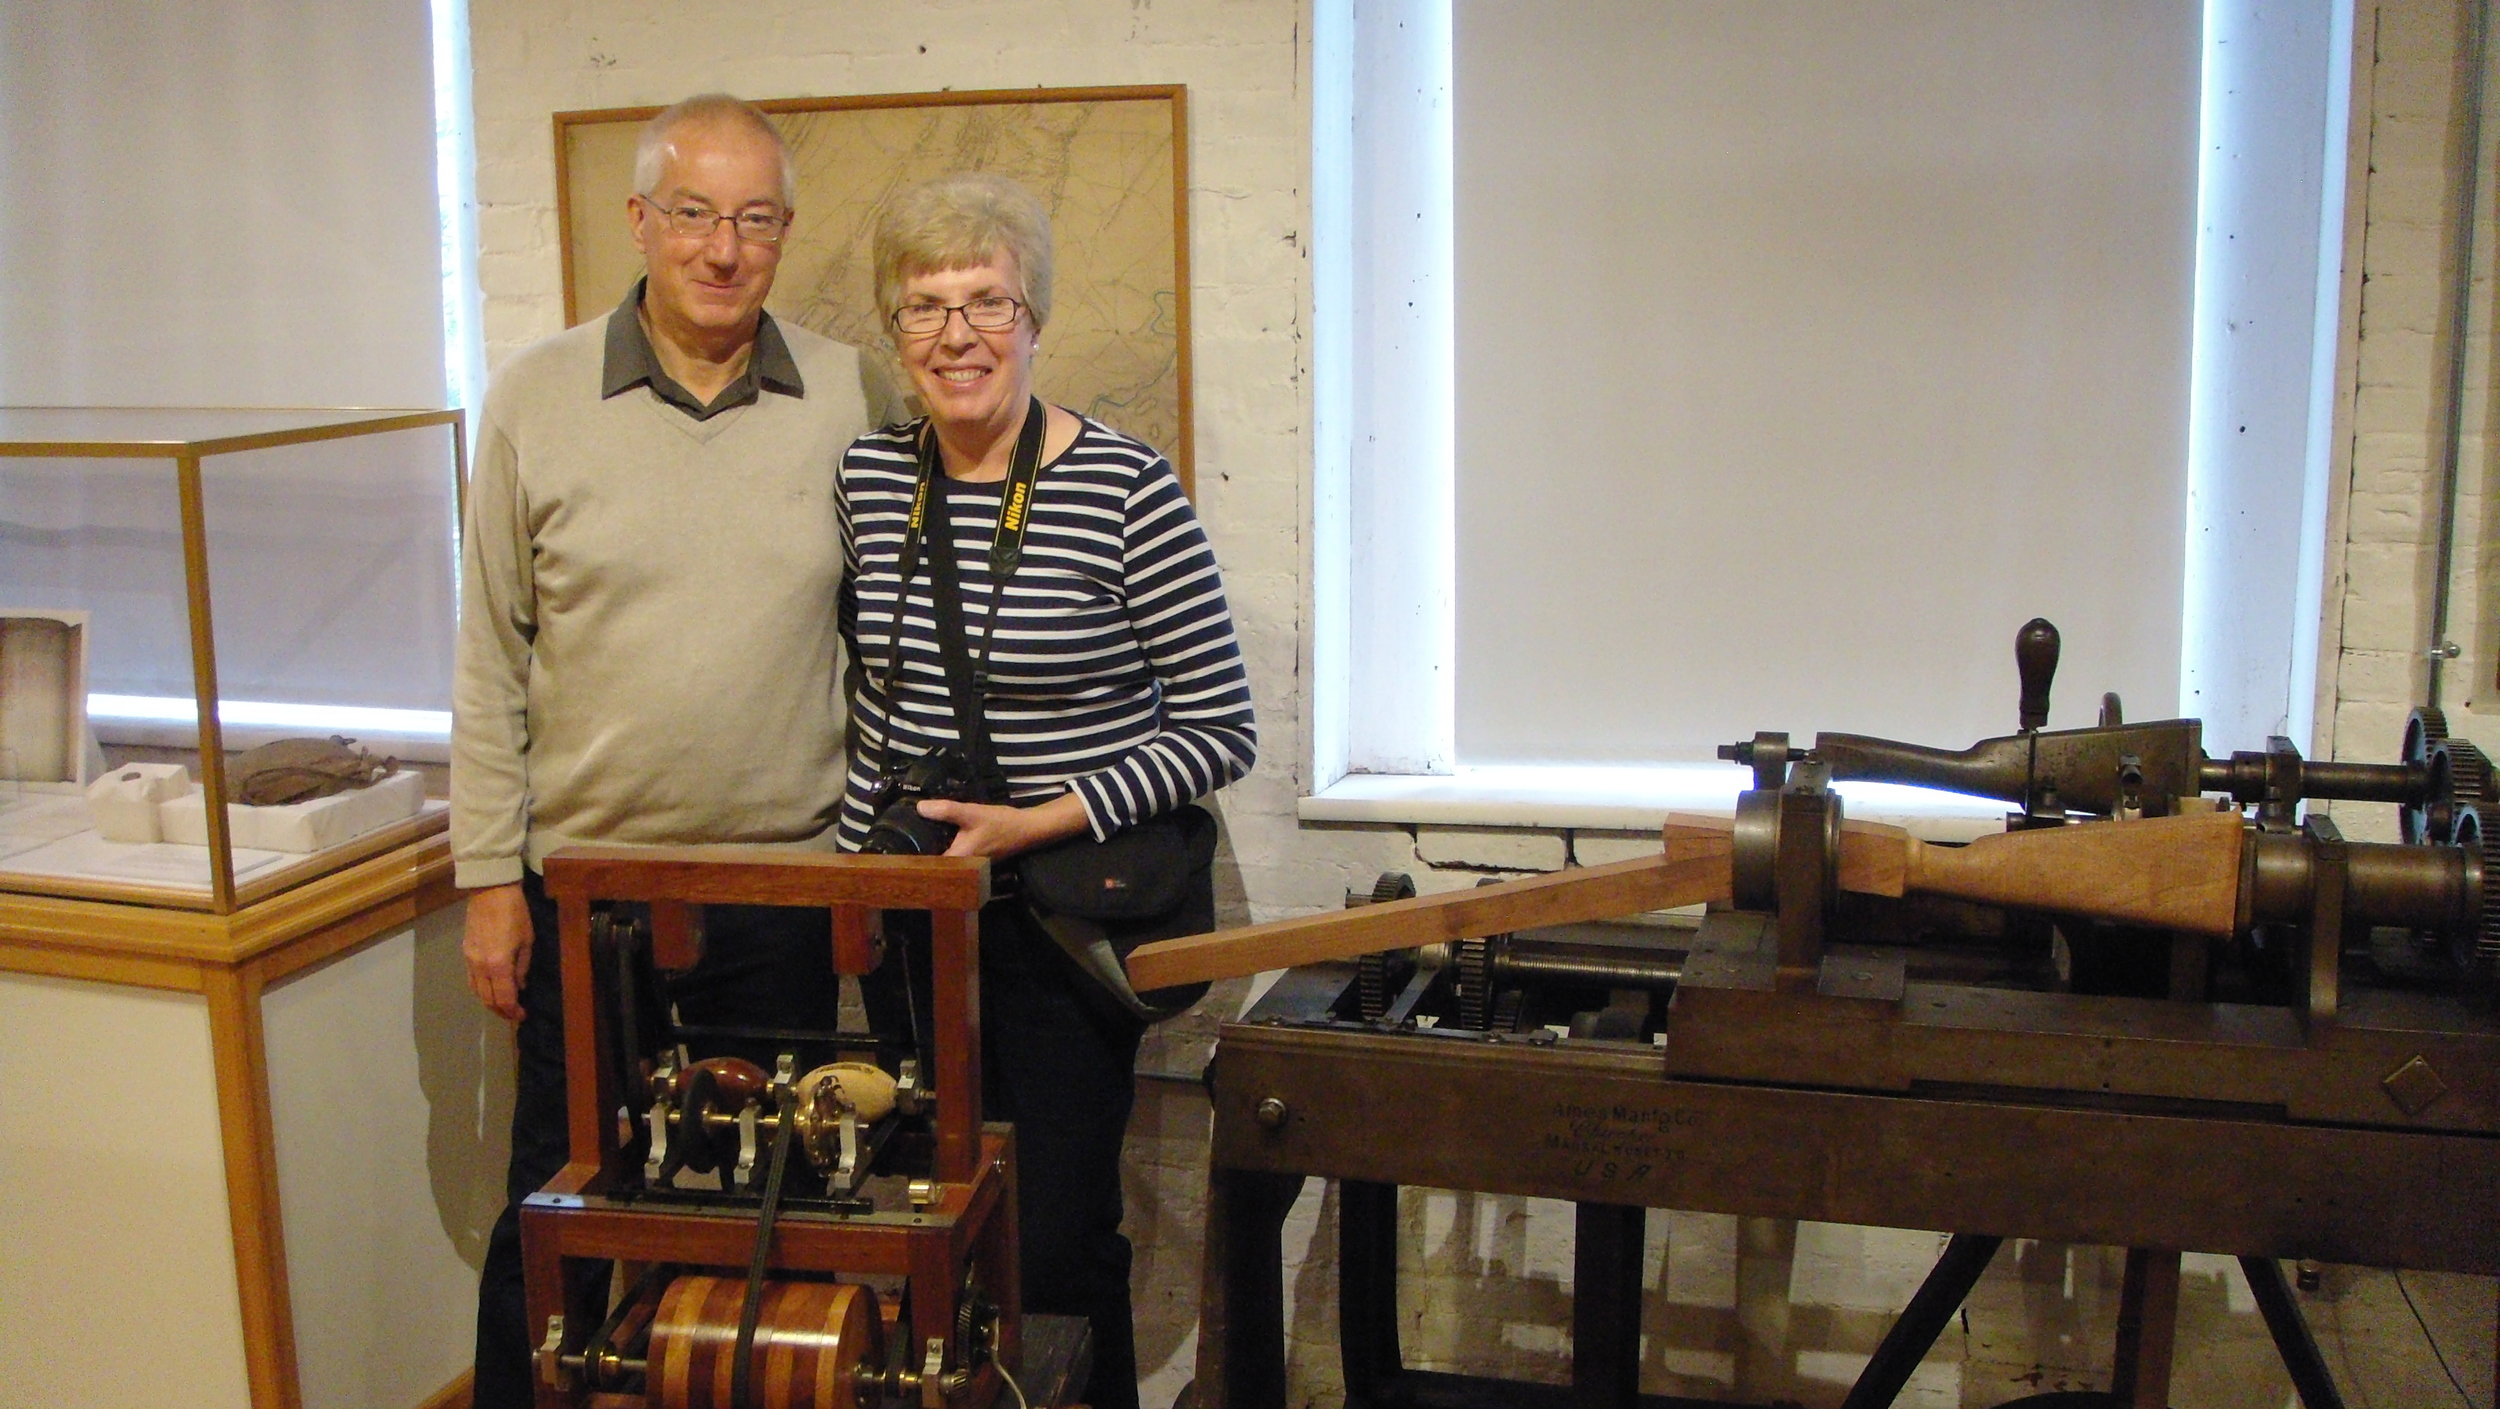 Mike & Lyn Jones, standing behind a model of the Blanchard lathe of 1822, whichhis father built.